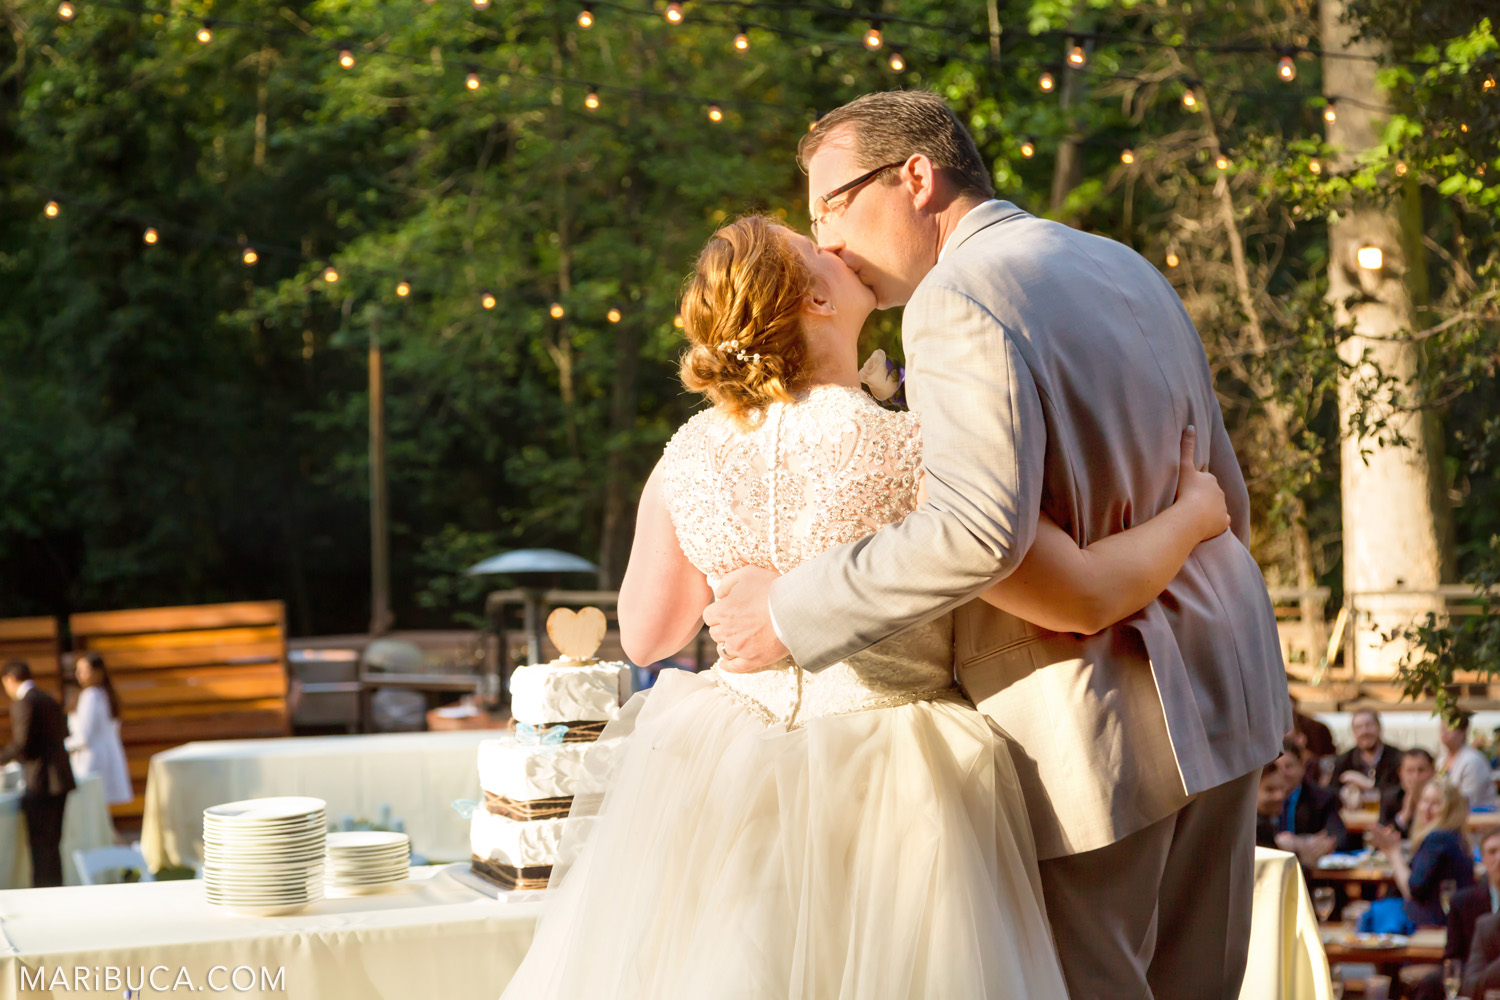 Bride and groom kiss each other in front of the guests in the Saratoga Springs Wedding